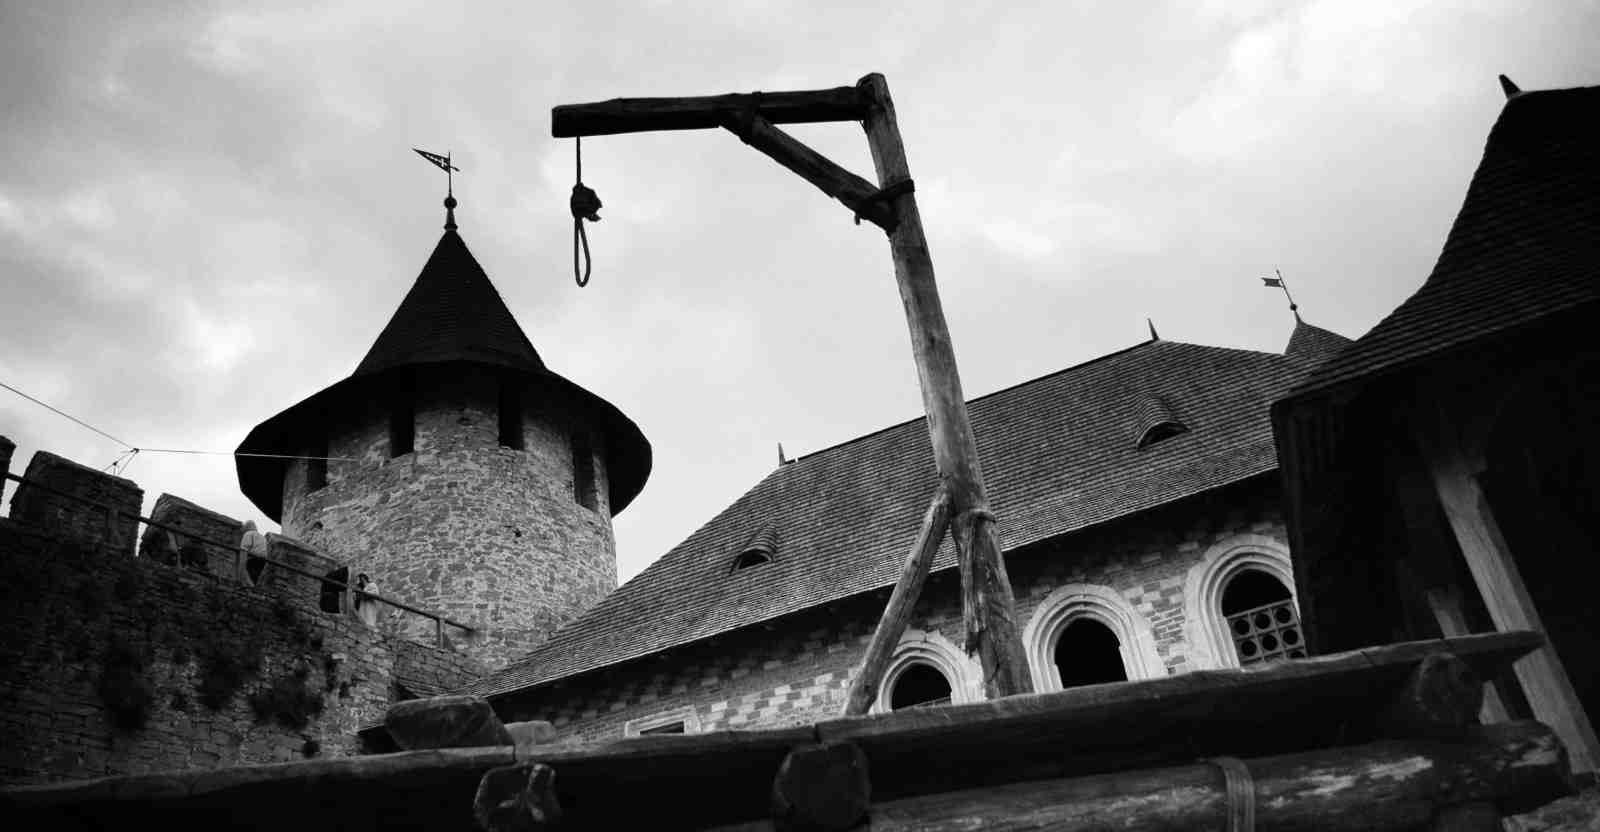 Medieval gallows on the background of a medieval castle